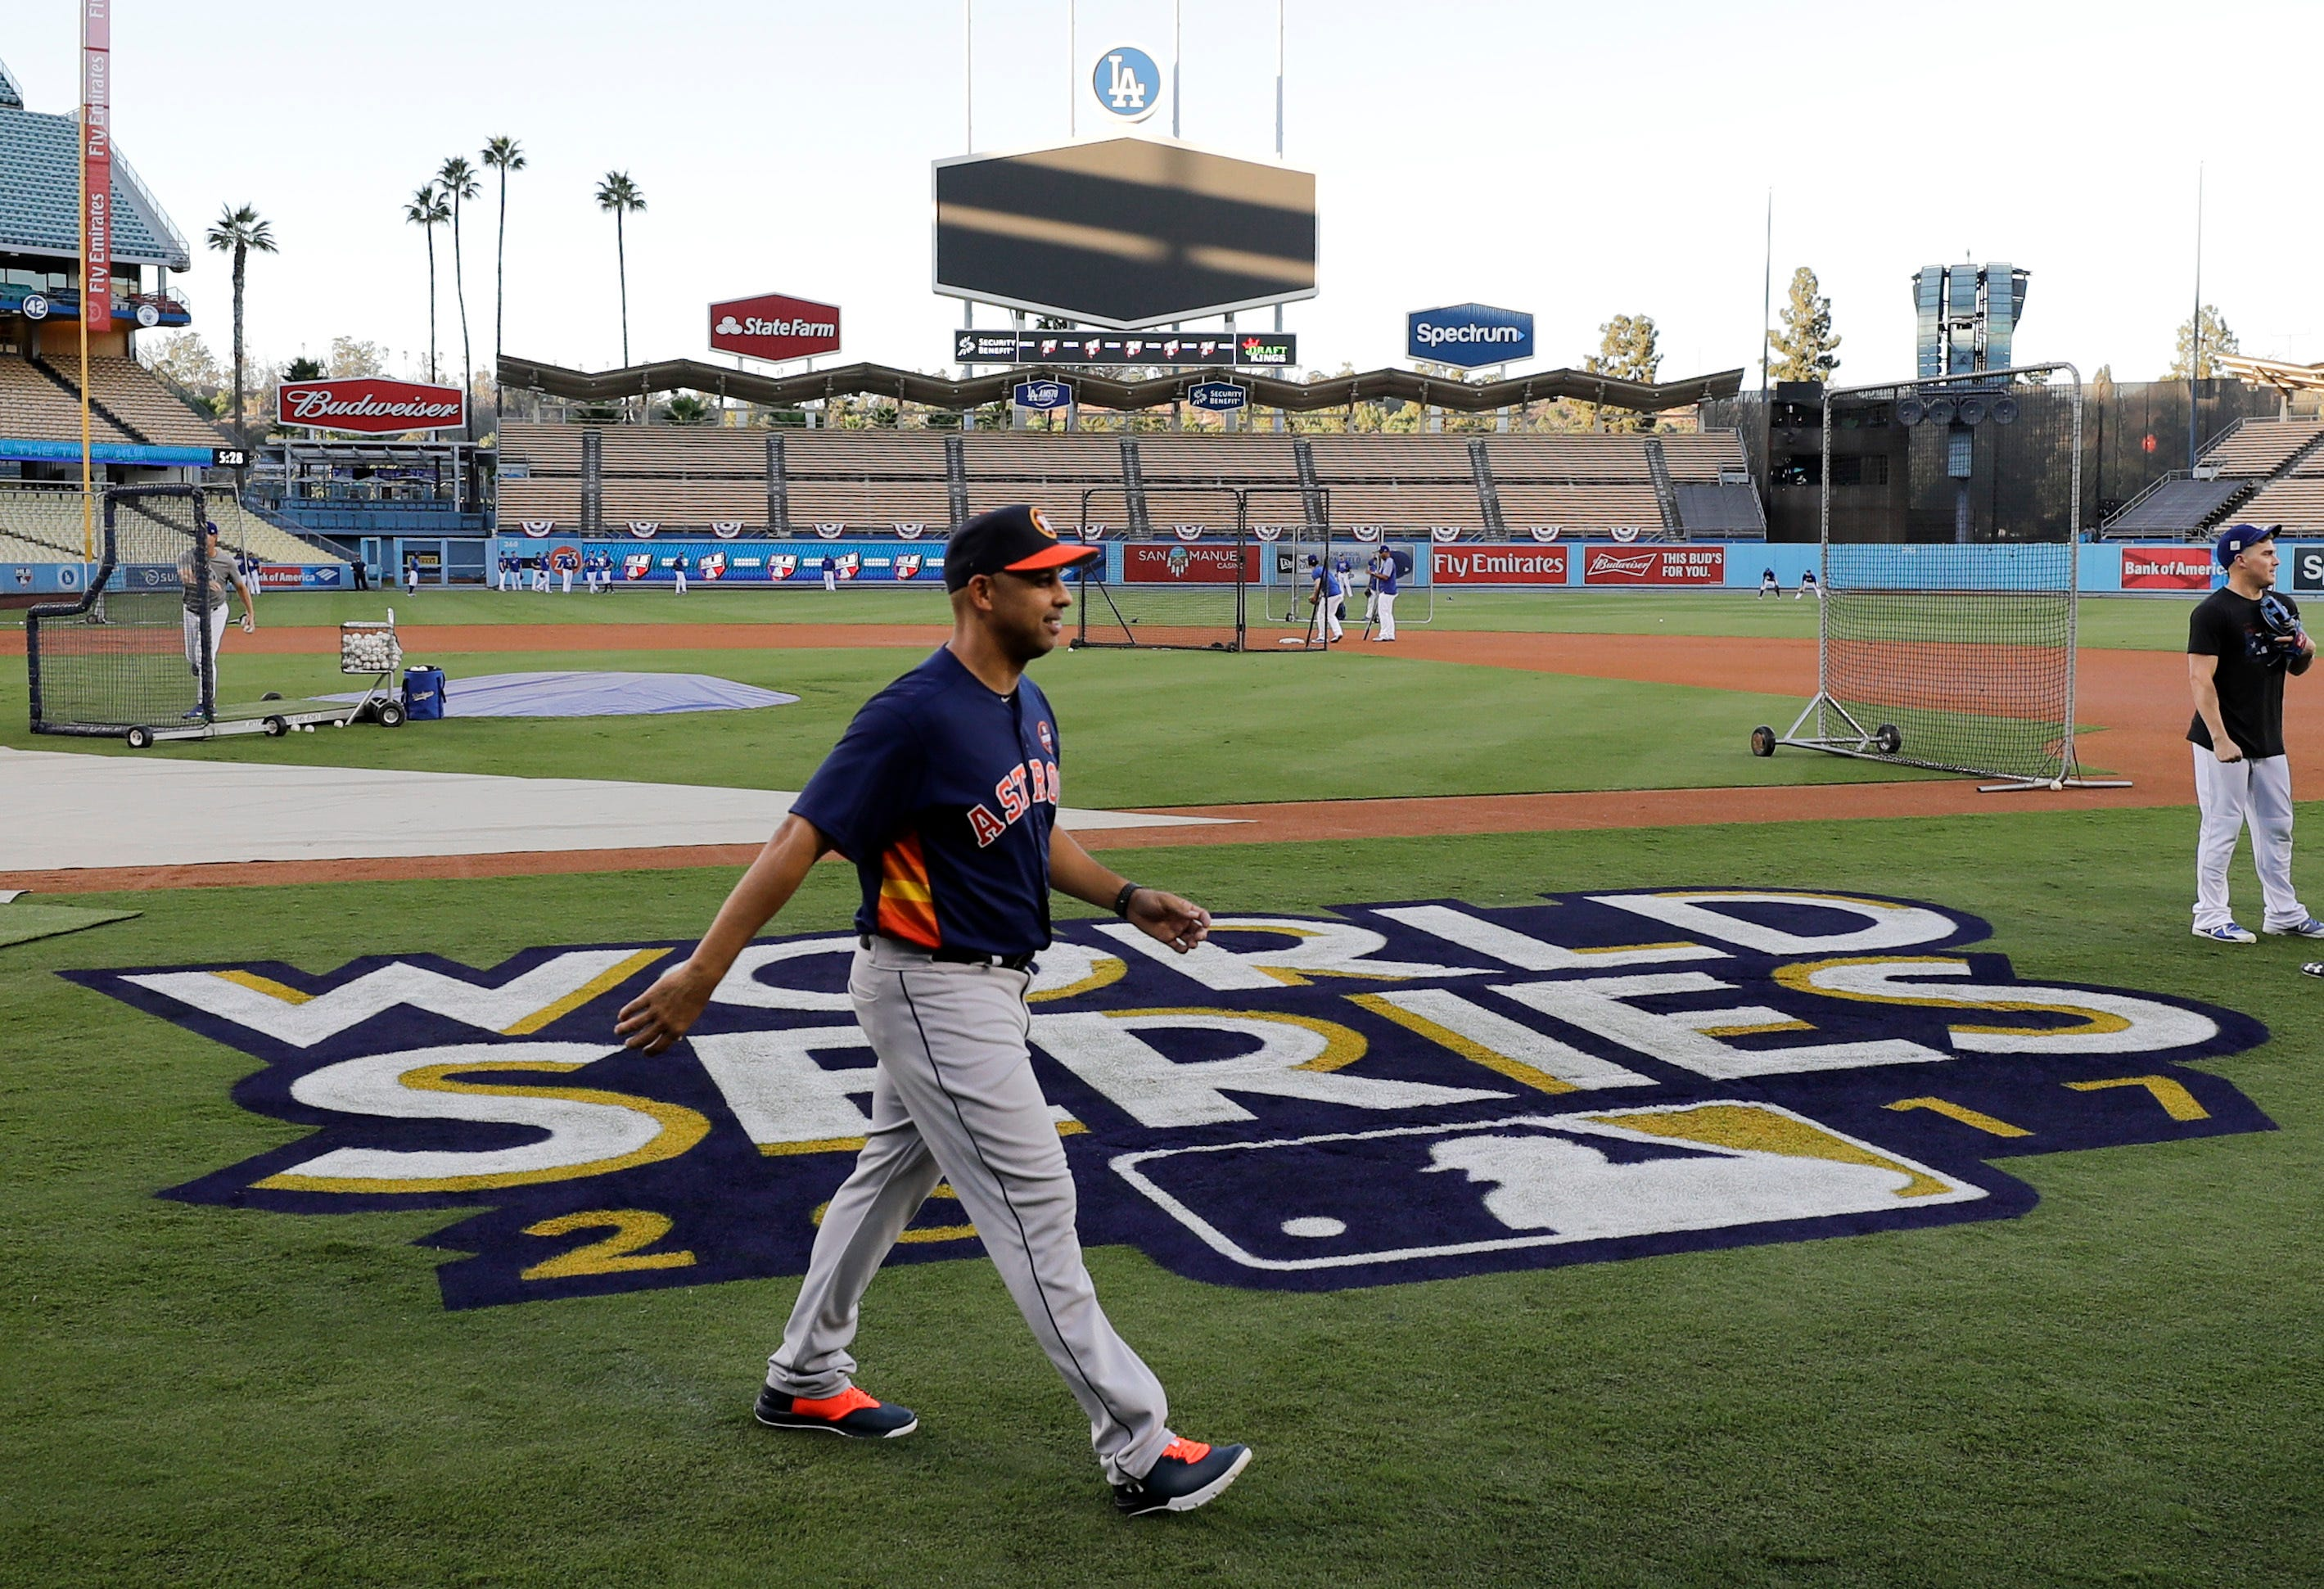 After Series win with Astros, Cora aims to knock them out